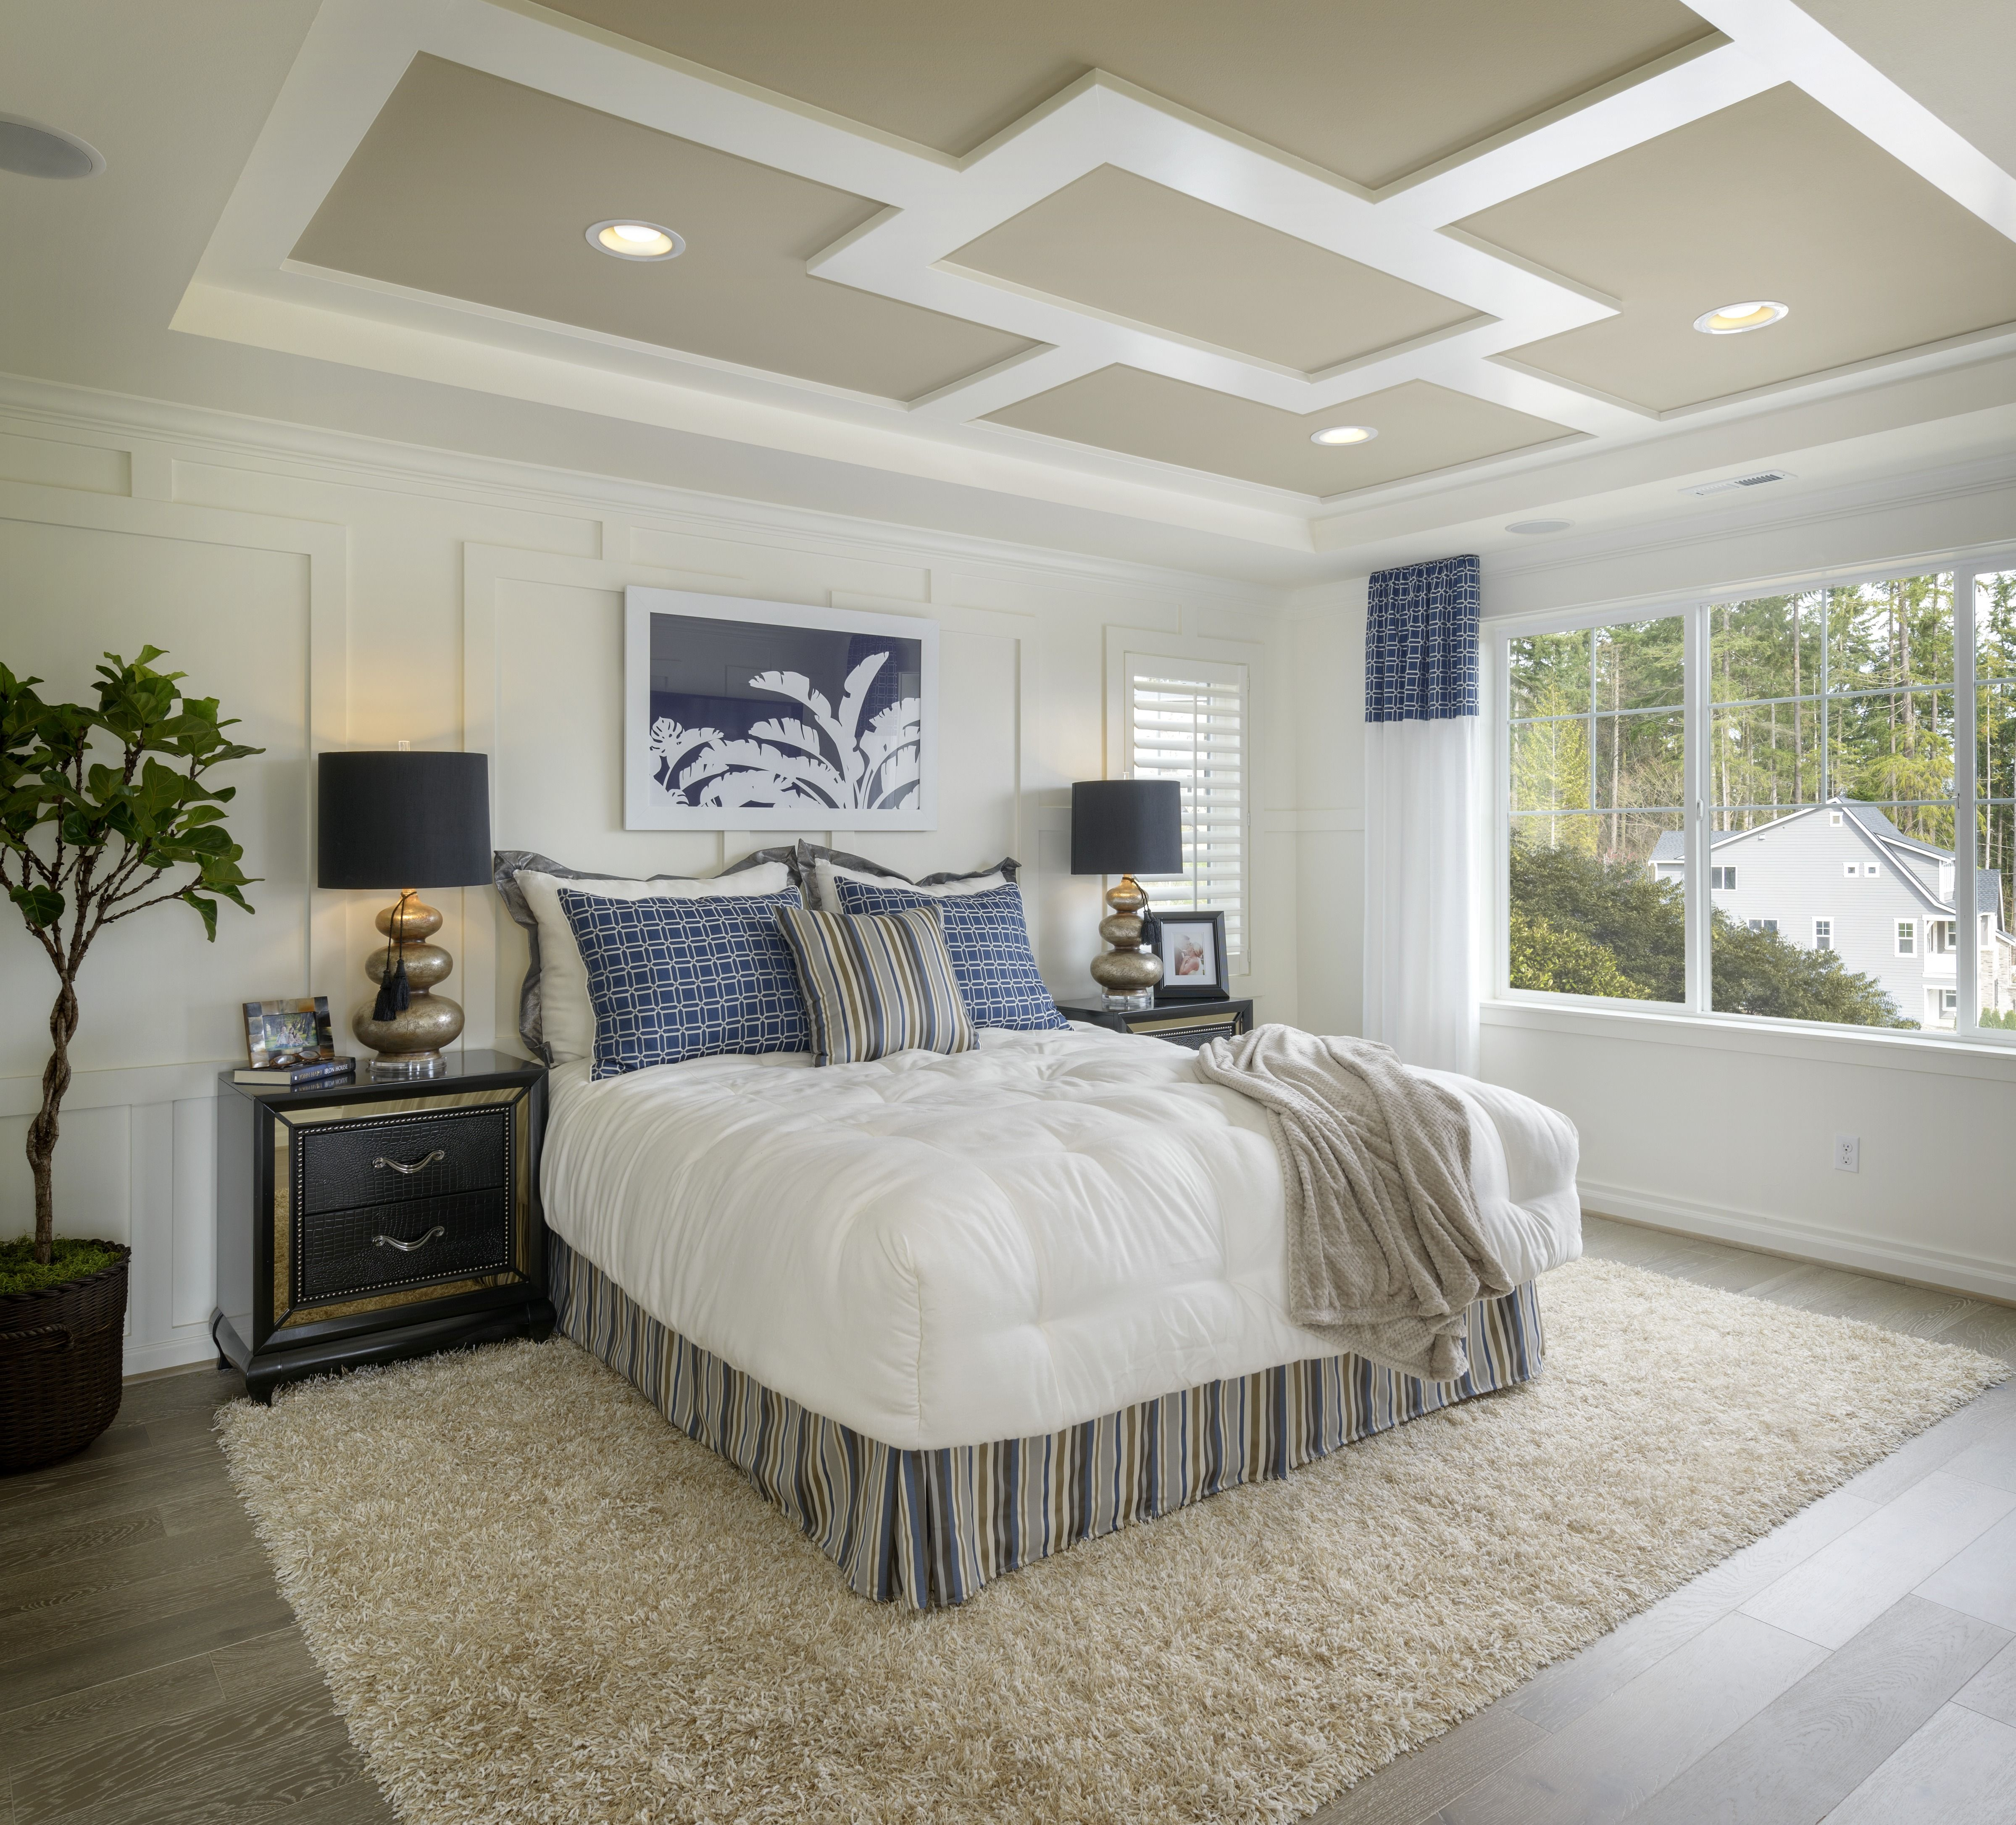 Master Bedroom Tray Ceiling Designs: A Peaceful Master Bedroom. (Toll Brothers At Parkhurst, WA